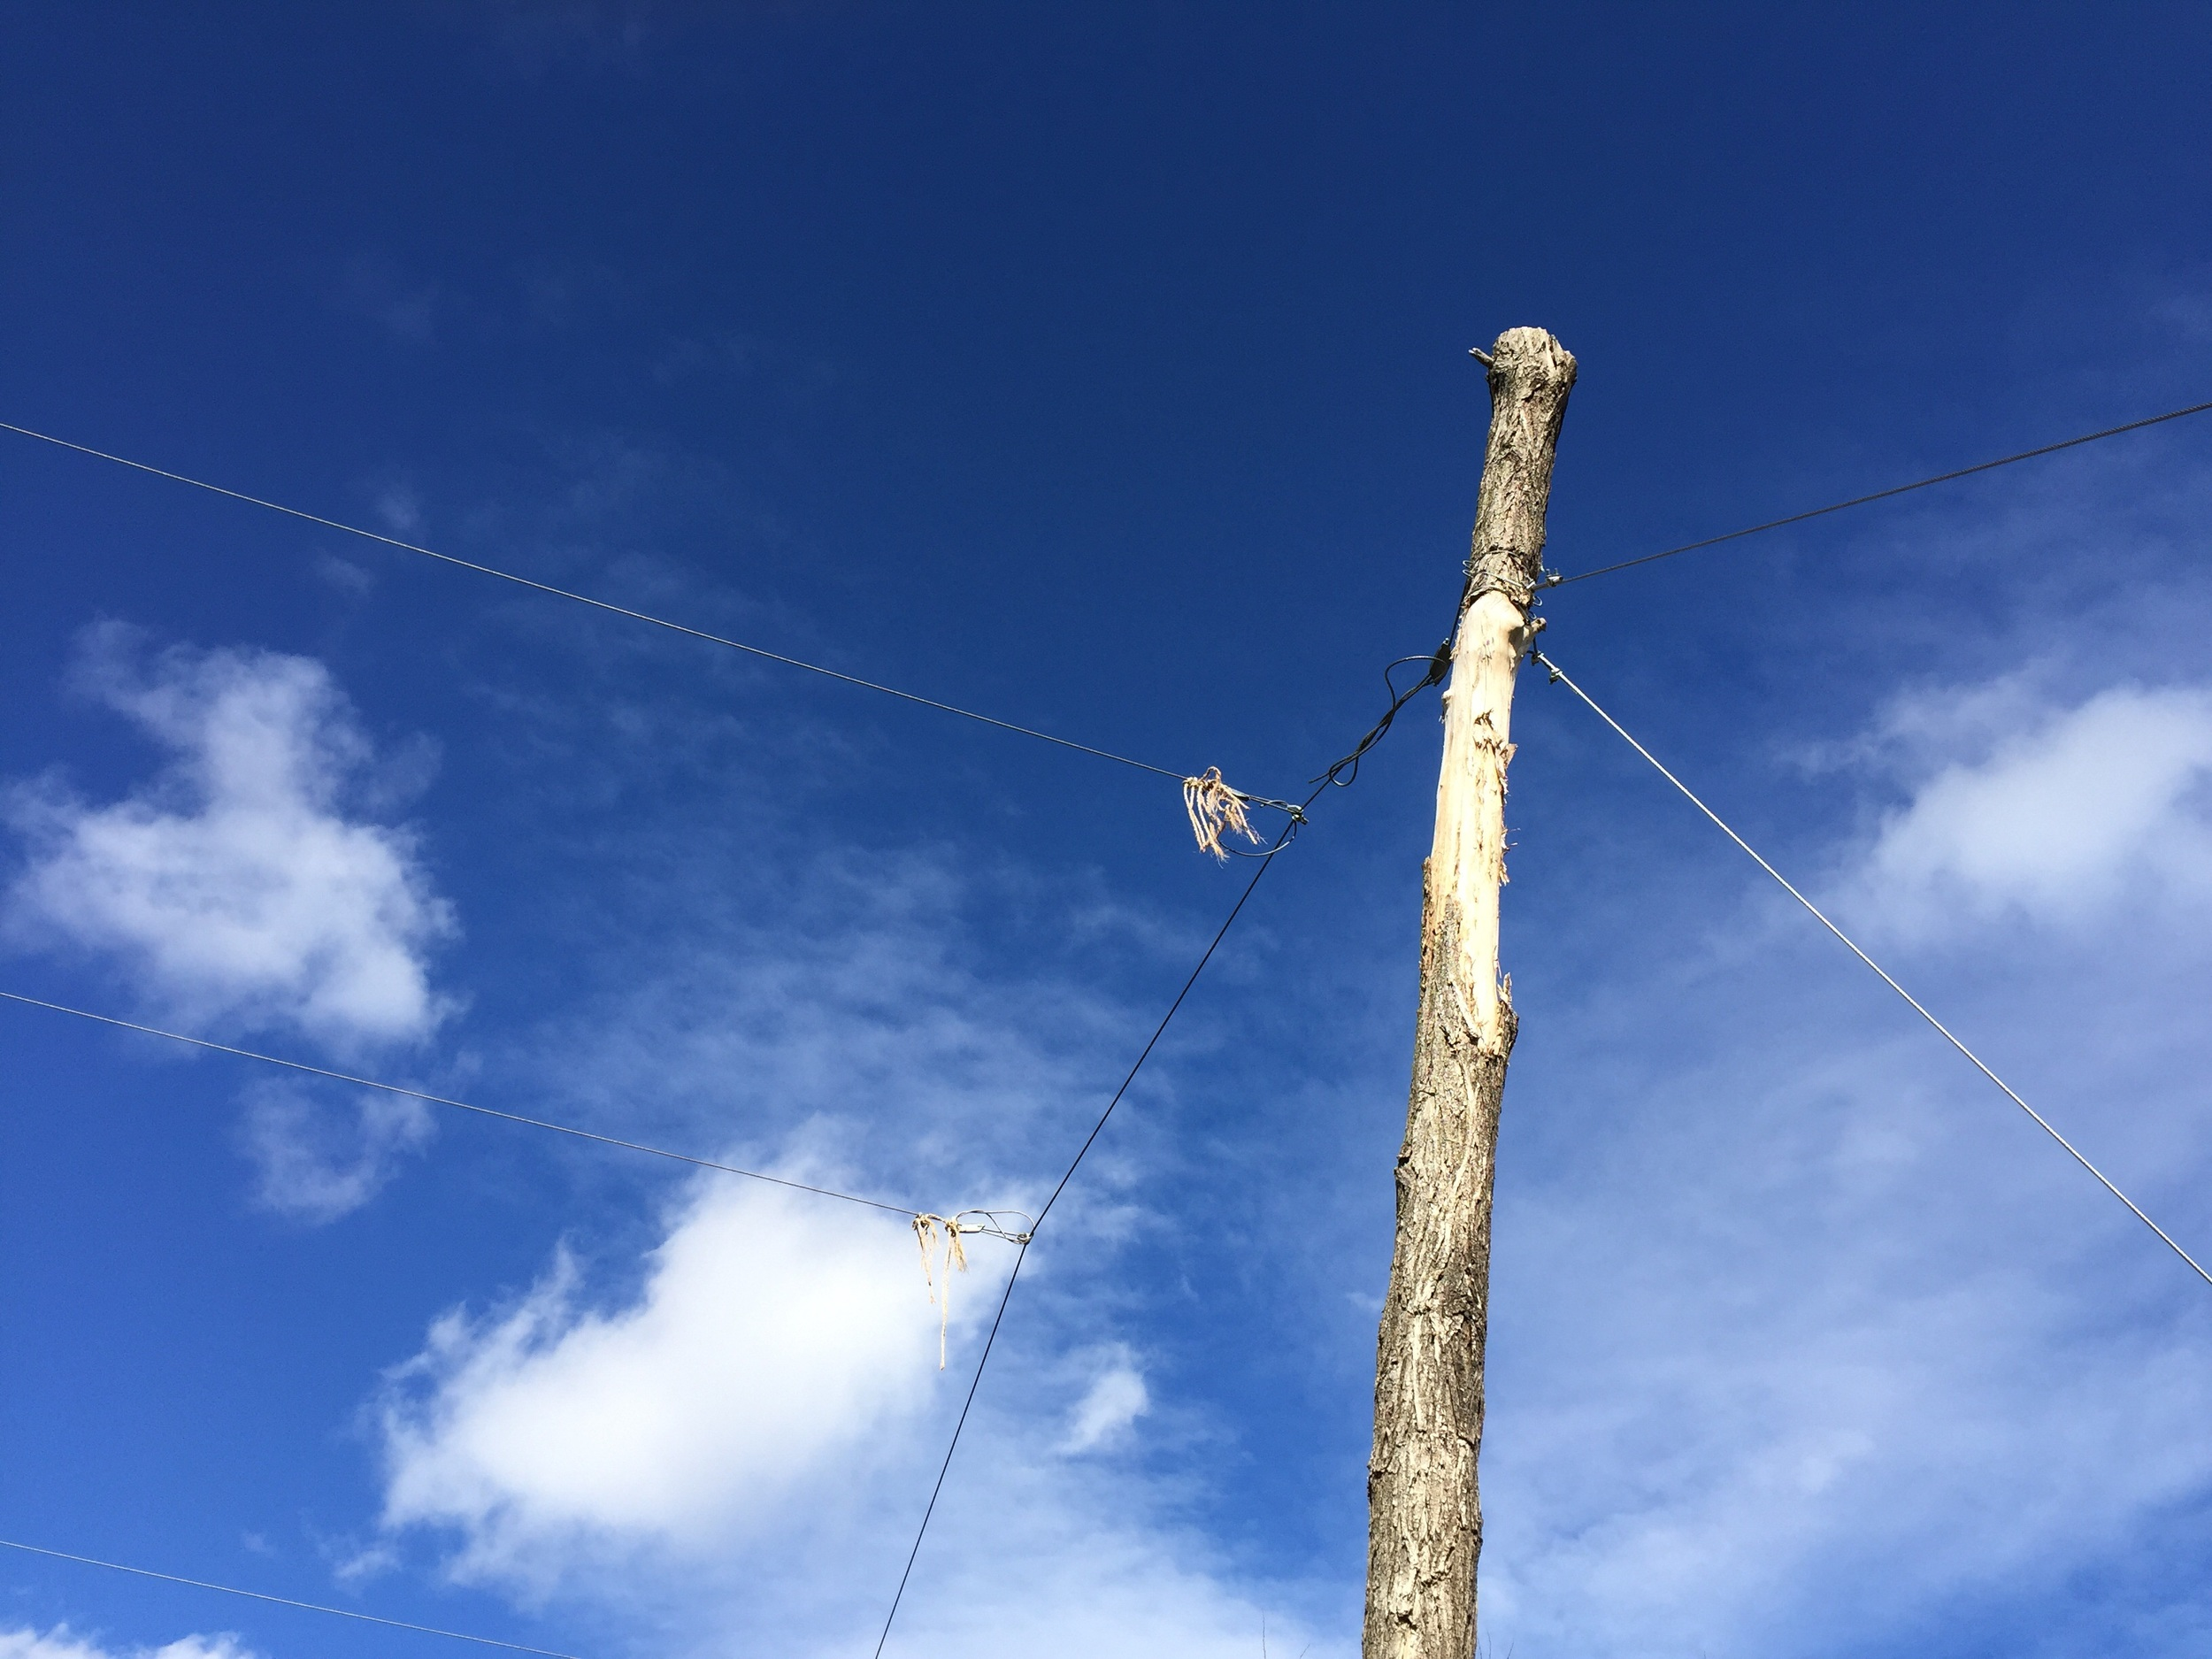 Coir ends on the wire